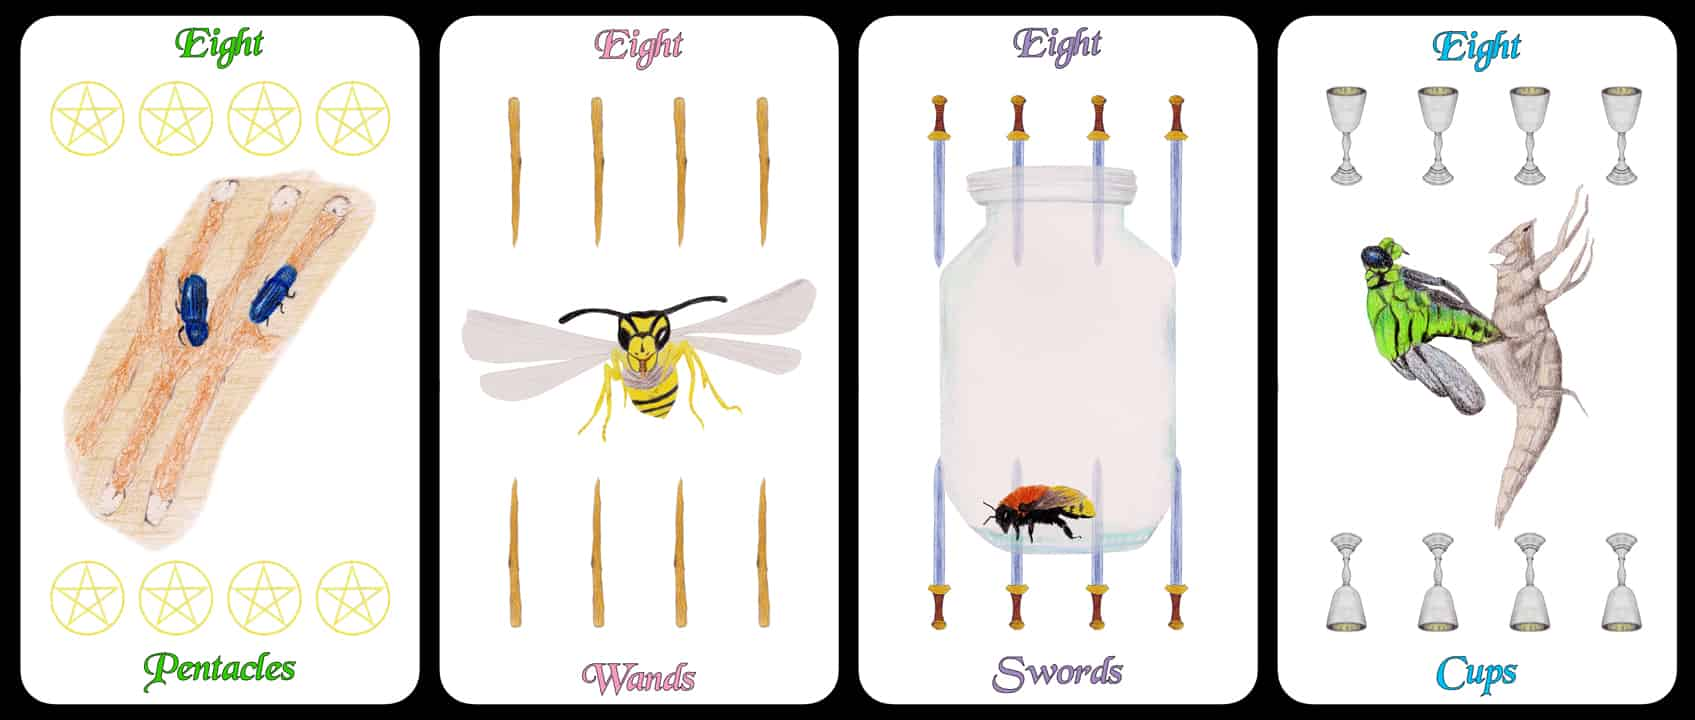 The Eights - The Arthropoda Tarot Deck by Linda Ursin